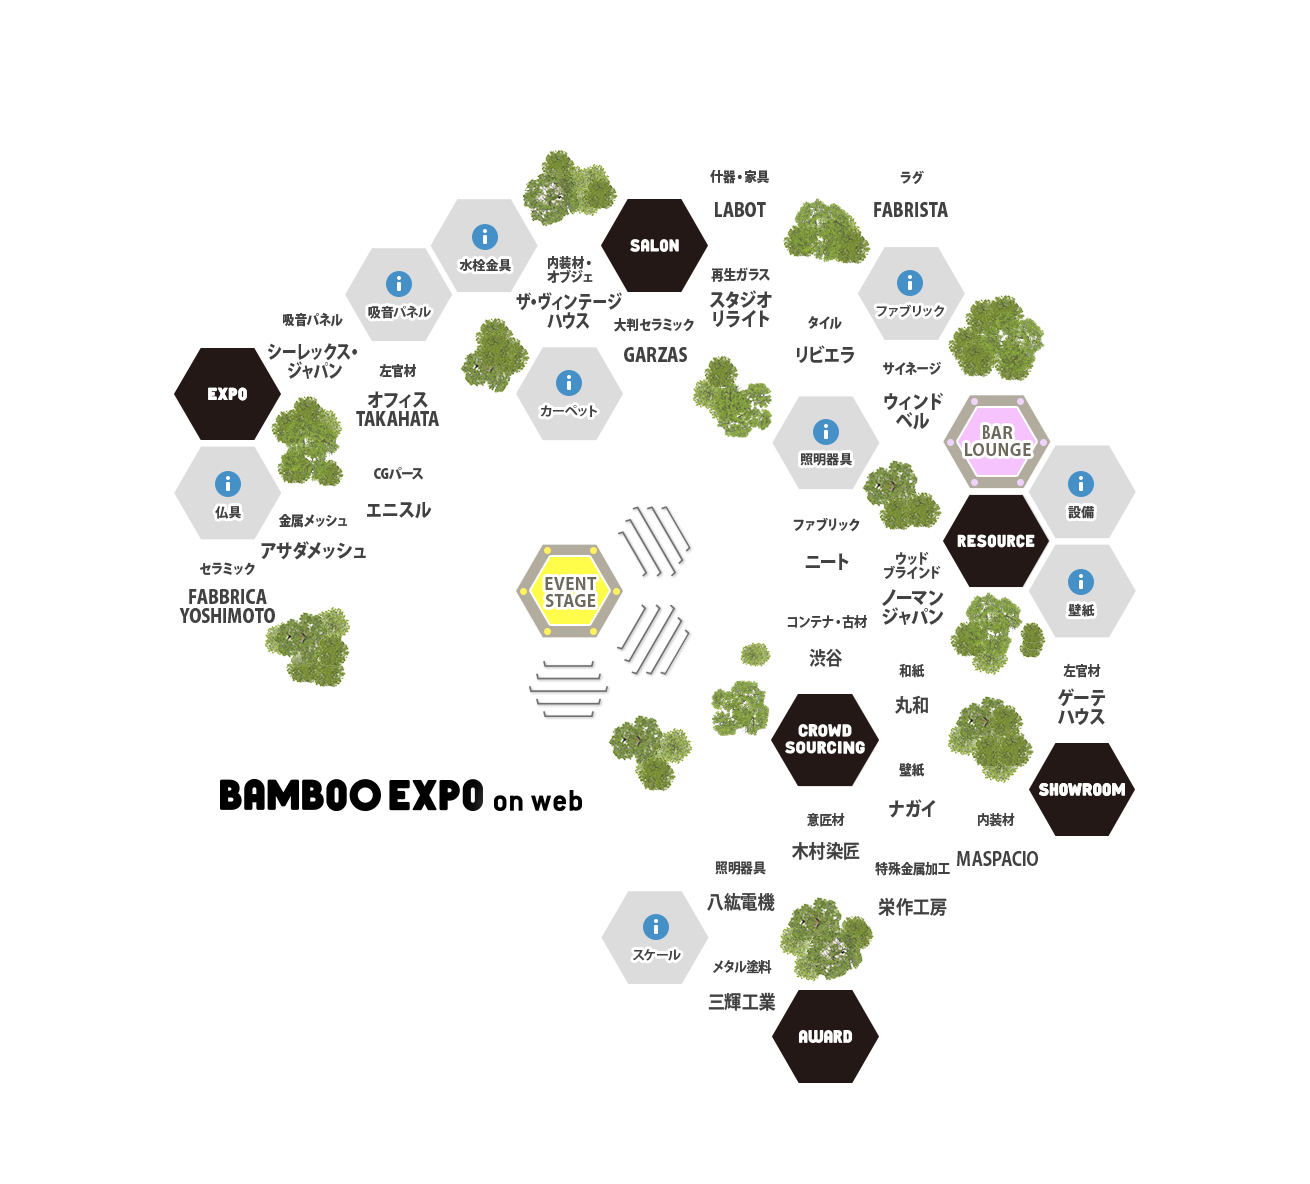 BAMBOO EXPO on web map